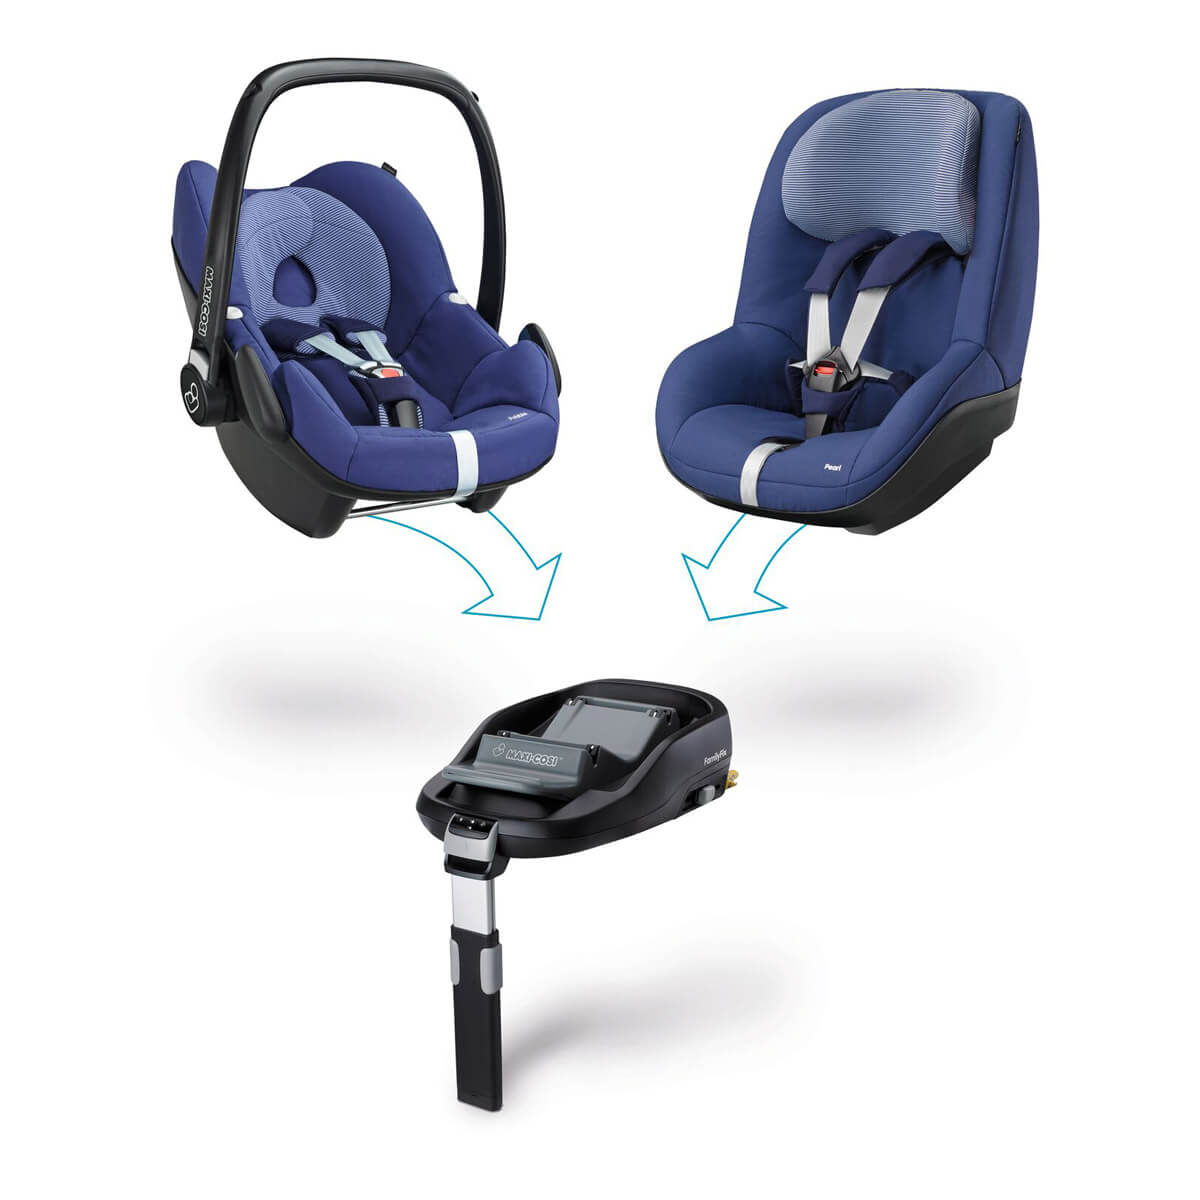 Compatible with FamilyFix base